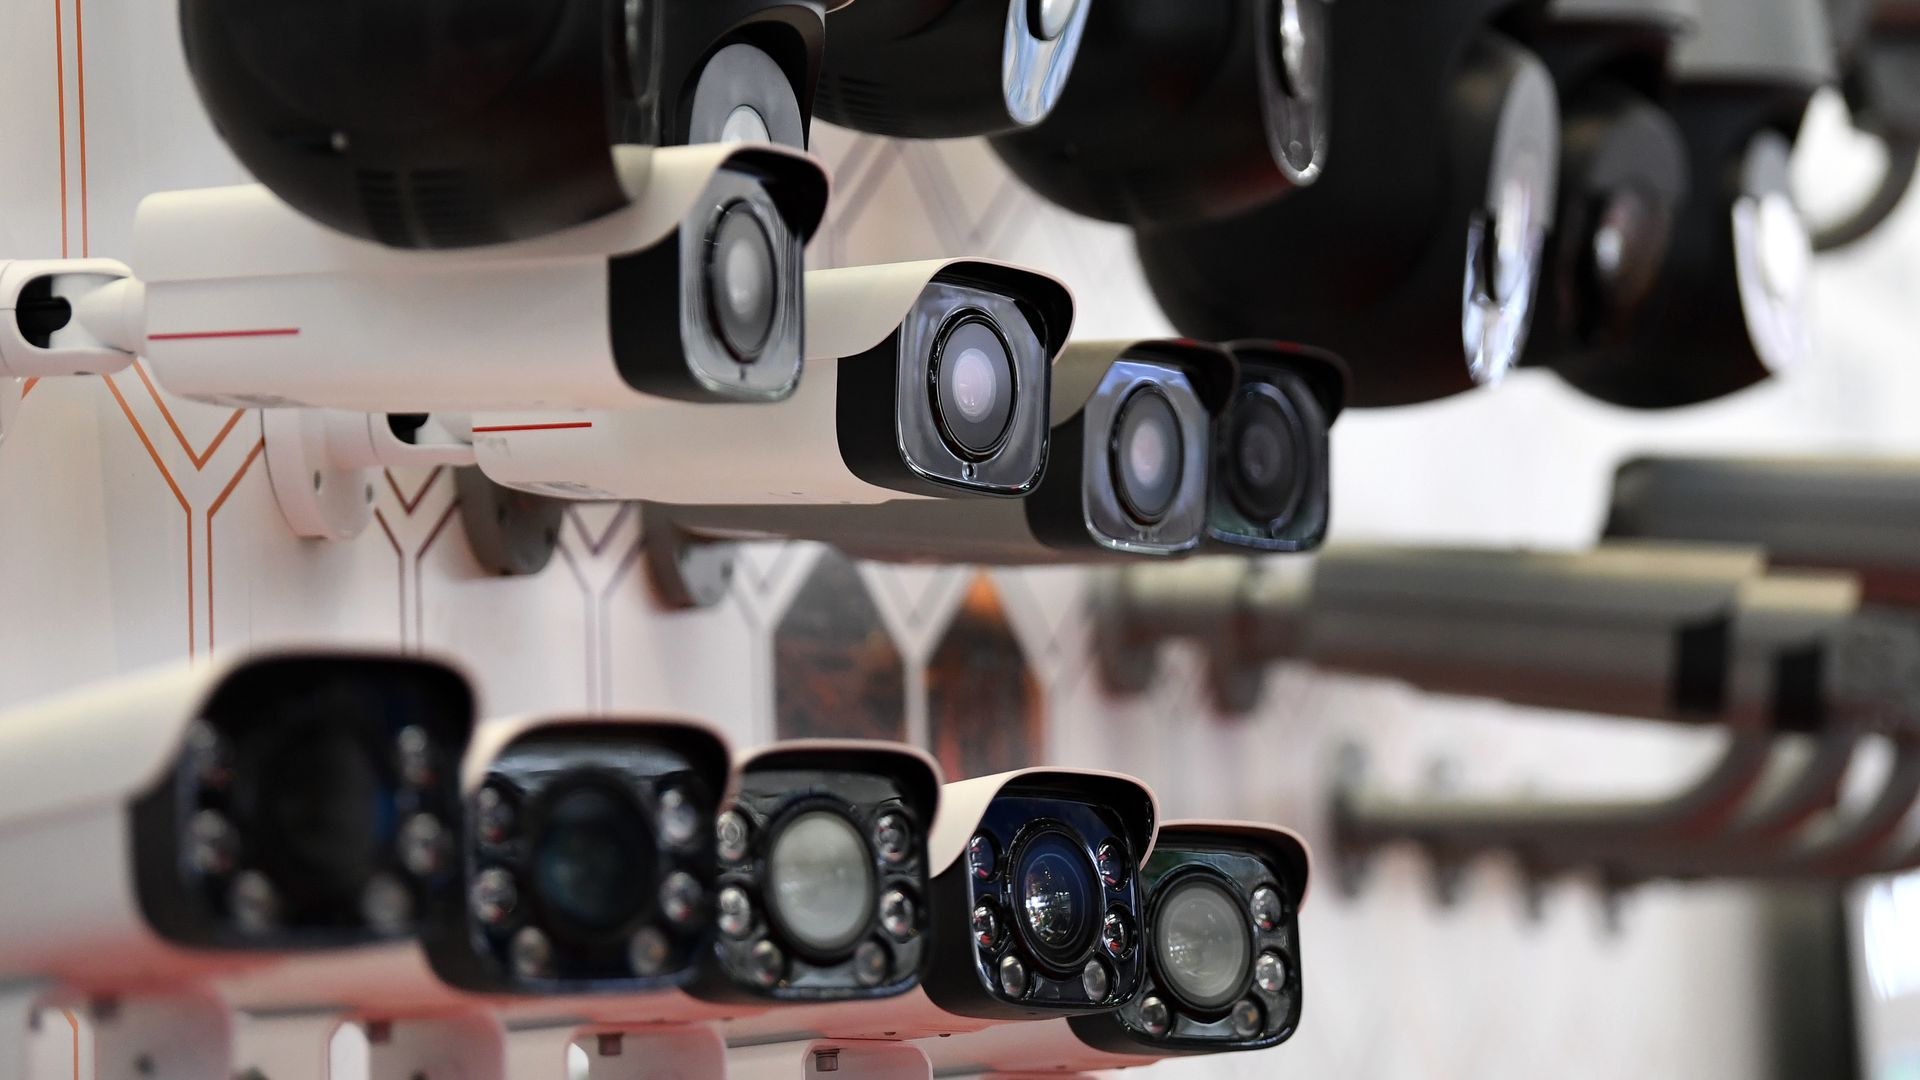 This image is a line of several security cameras.